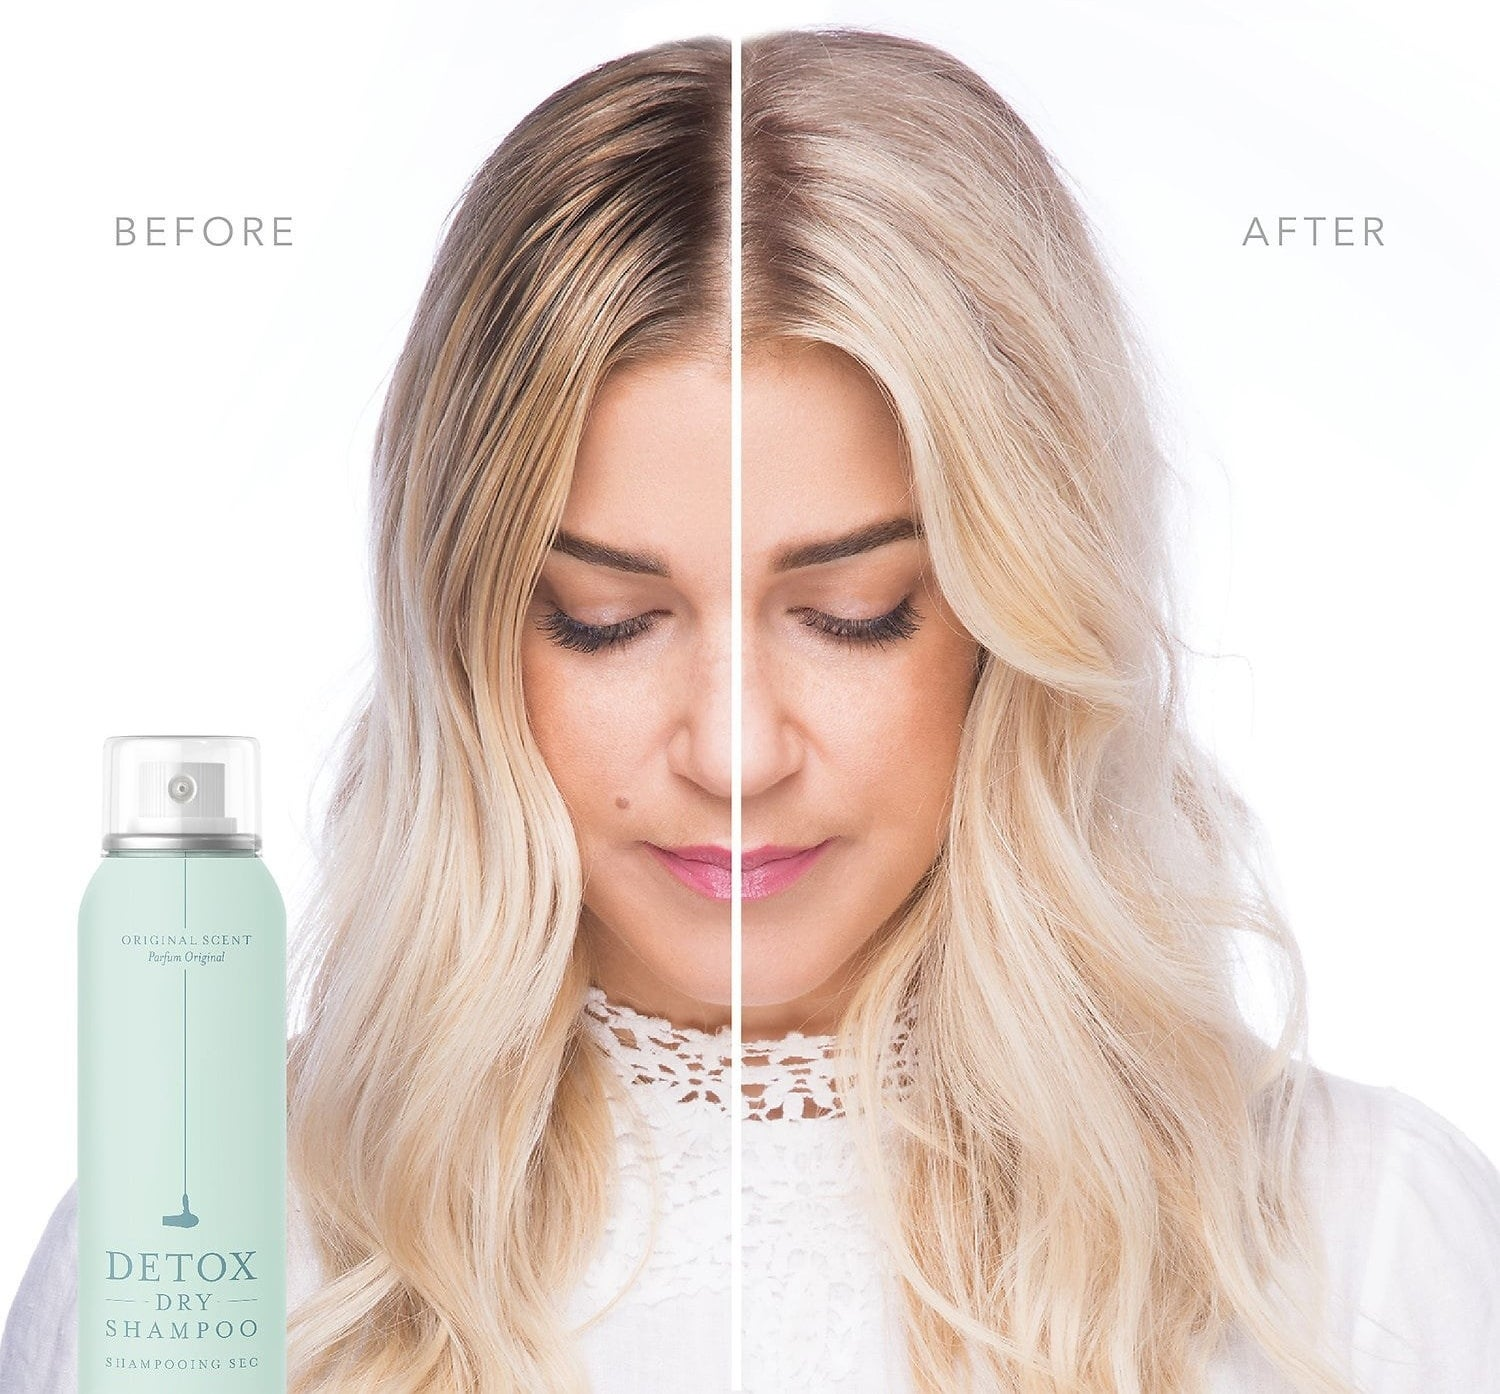 """Promising review: """"No lie. This stuff is incredible. I never truly understood dry shampoo, because I've never found that it actually replaced real shampoo until I tried this stuff. I can literally go a week without washing my hair if I give it a quick blast with this. Now I can get up on Monday, take my time doing my hair, and literally don't have to wash again until Saturday...and I was a RELIGIOUS every-other-day hair washer. No one can tell that I haven't washed it, either. I get more compliments on my hair at the end of the week than the beginning! Doesn't hurt that I really like the smell as well. This will be a part of my beauty routine forever. Can't say enough good things."""" —bethika32Get it from Sephora for $23. Cruelty-free and leaping bunny certified."""